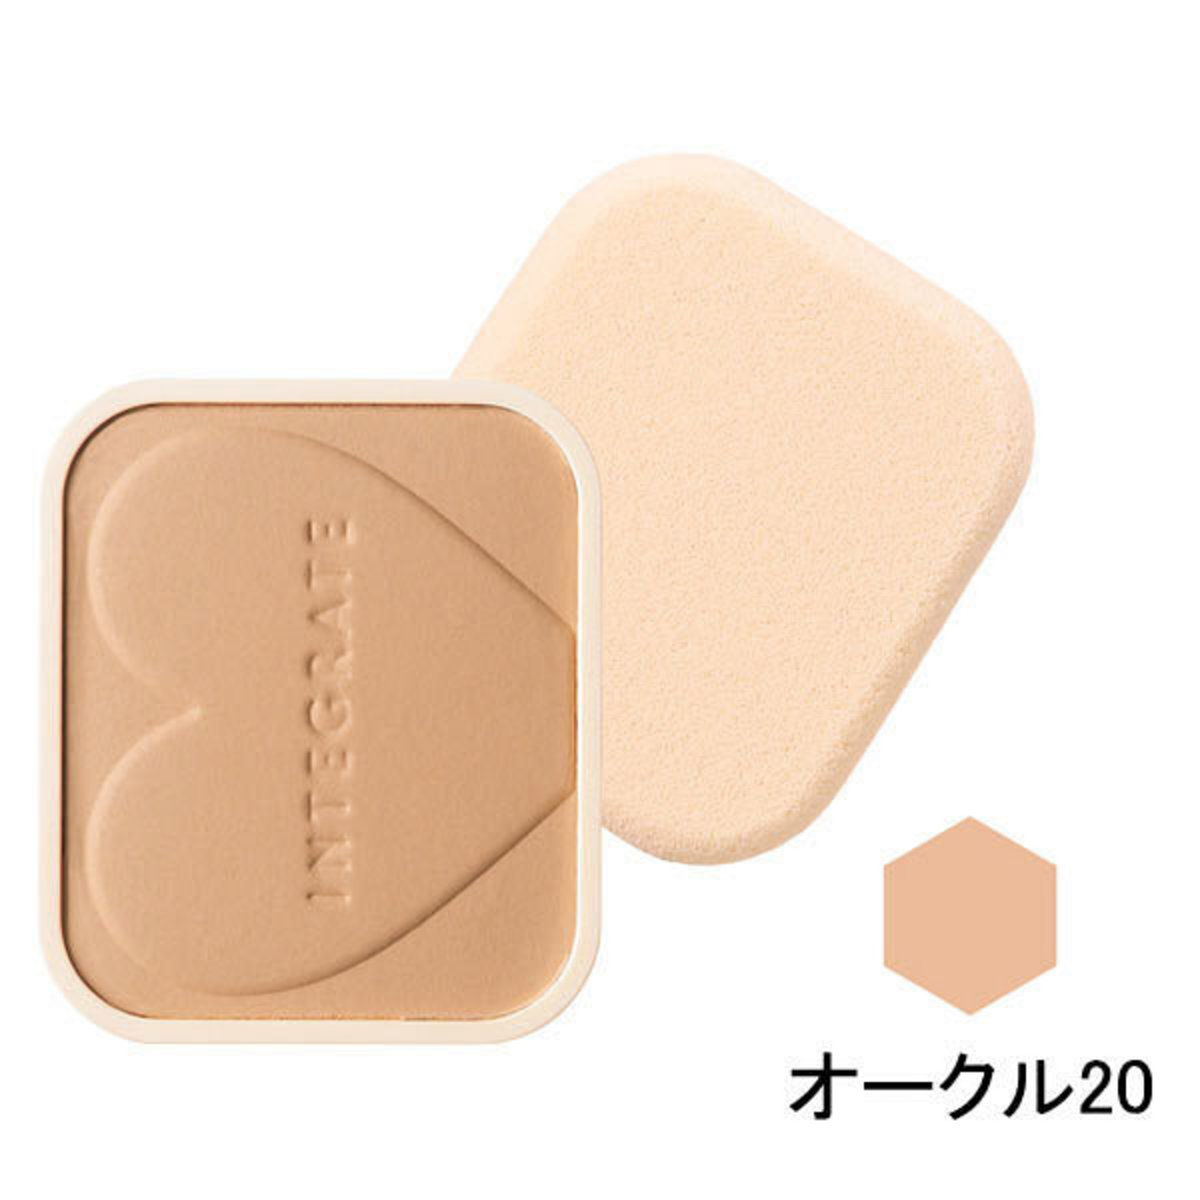 Integrate Gracy Pro Finish Foundation (SPF 16/PA++) 10g OC-20 Natural Color (4901872055500)